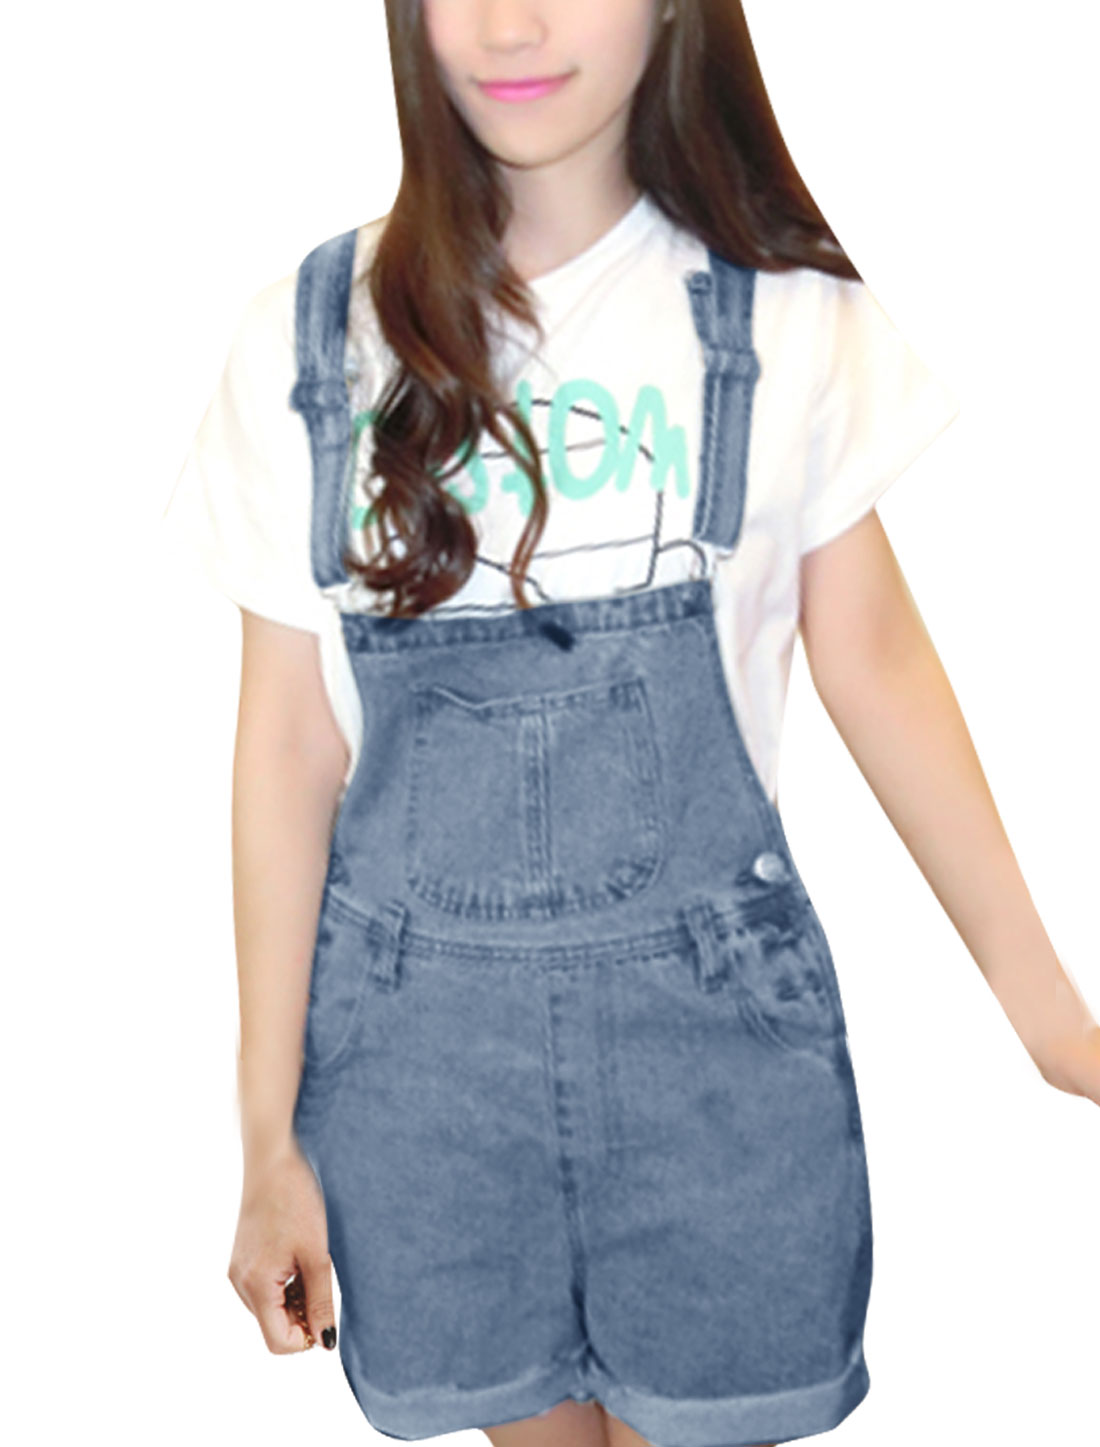 Women Adjustable Straps Waistband Loop Denim Overalls Pale Blue M